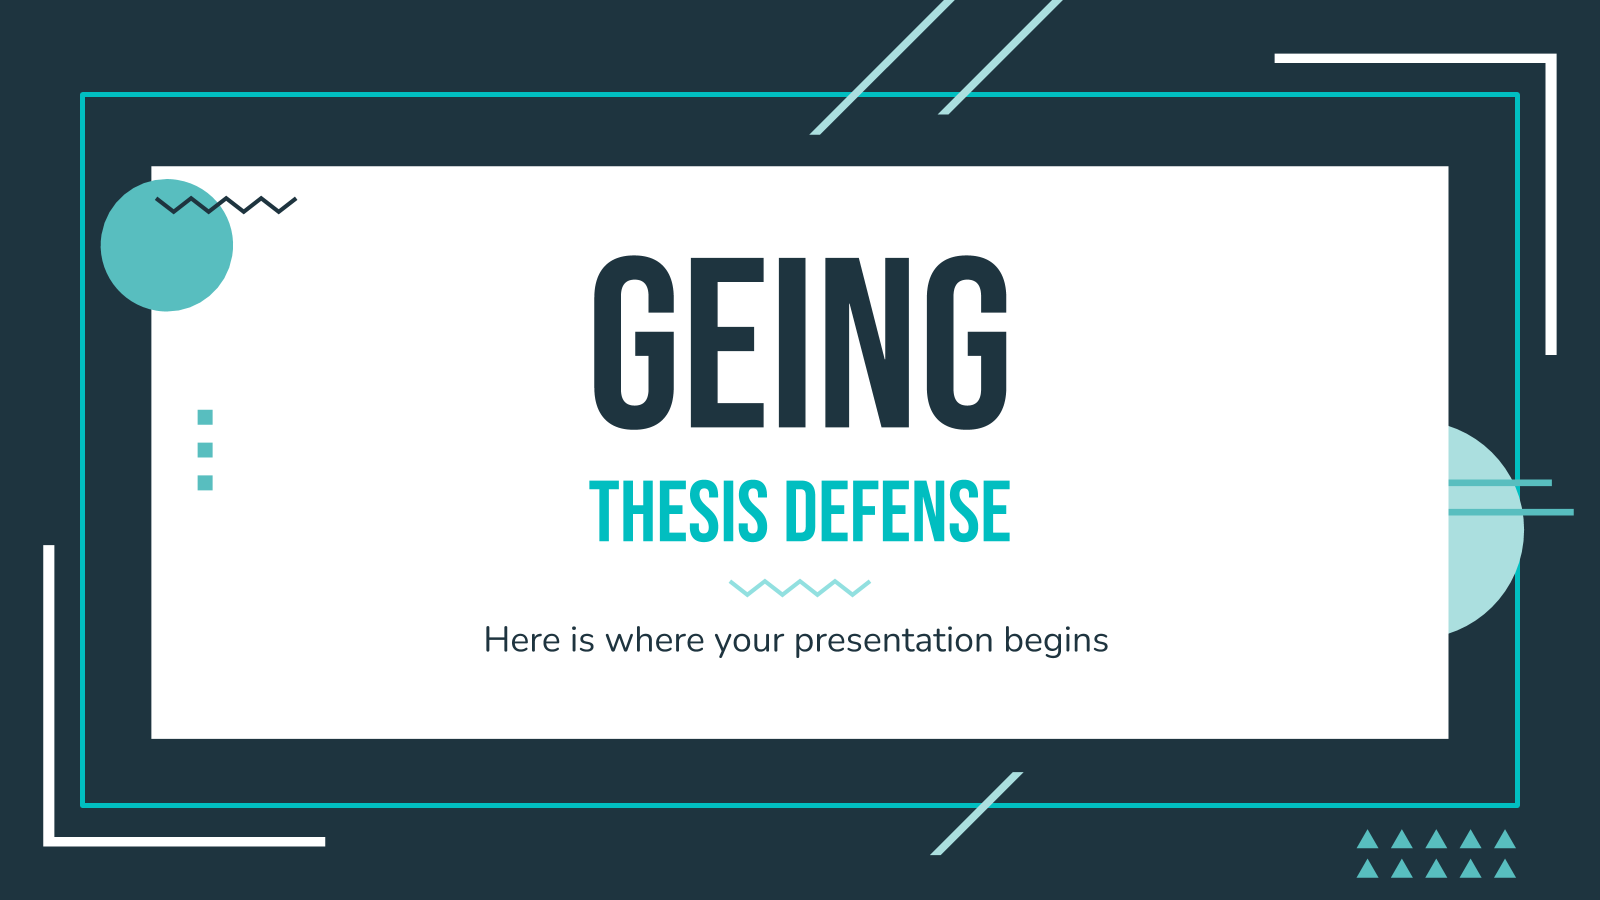 Geing Thesis Defense presentation template